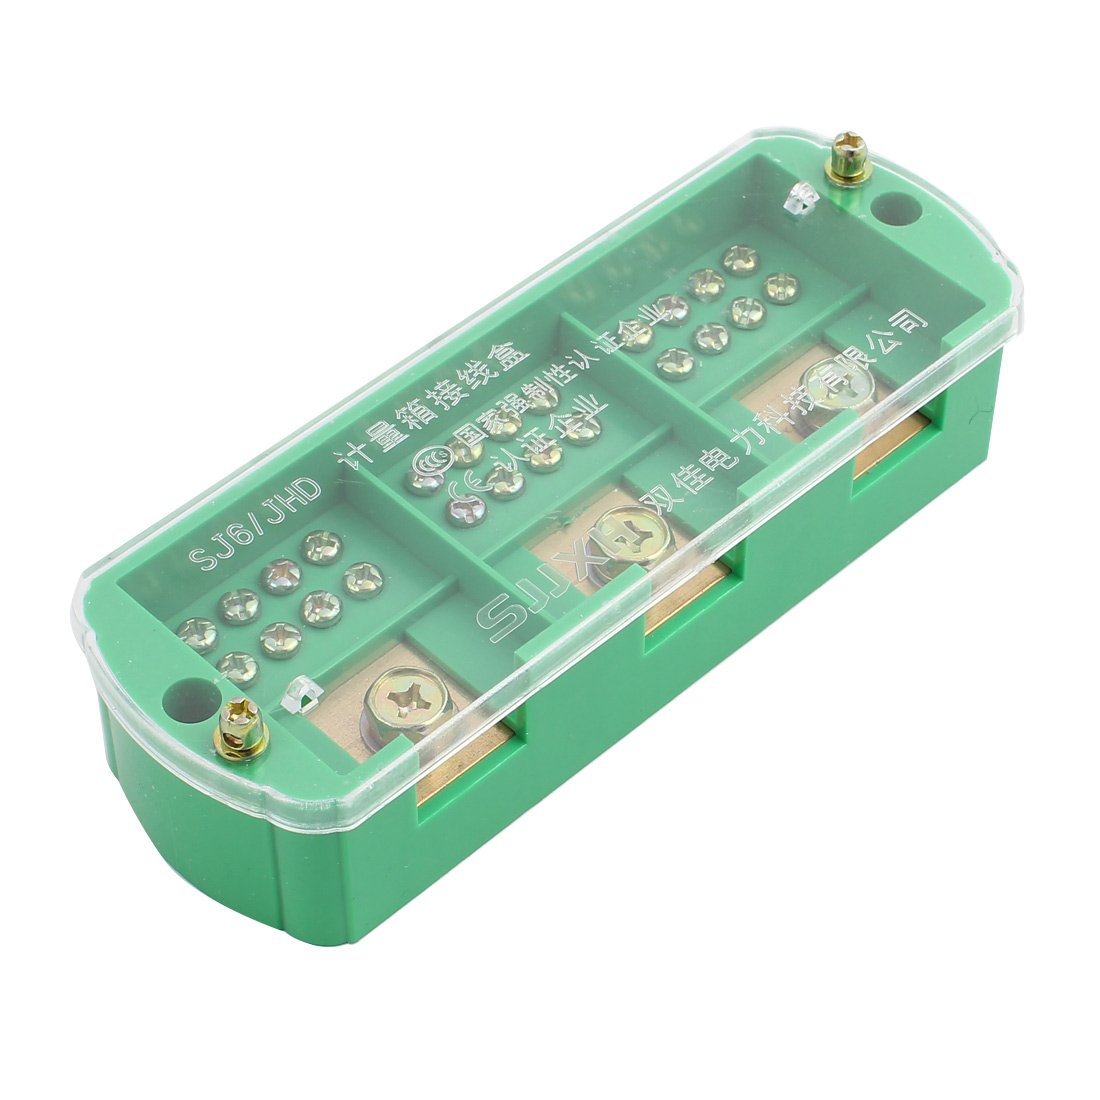 uxcell 3 Phase 12 Electricity Meter Cable Barrier Block Terminal Strip Green